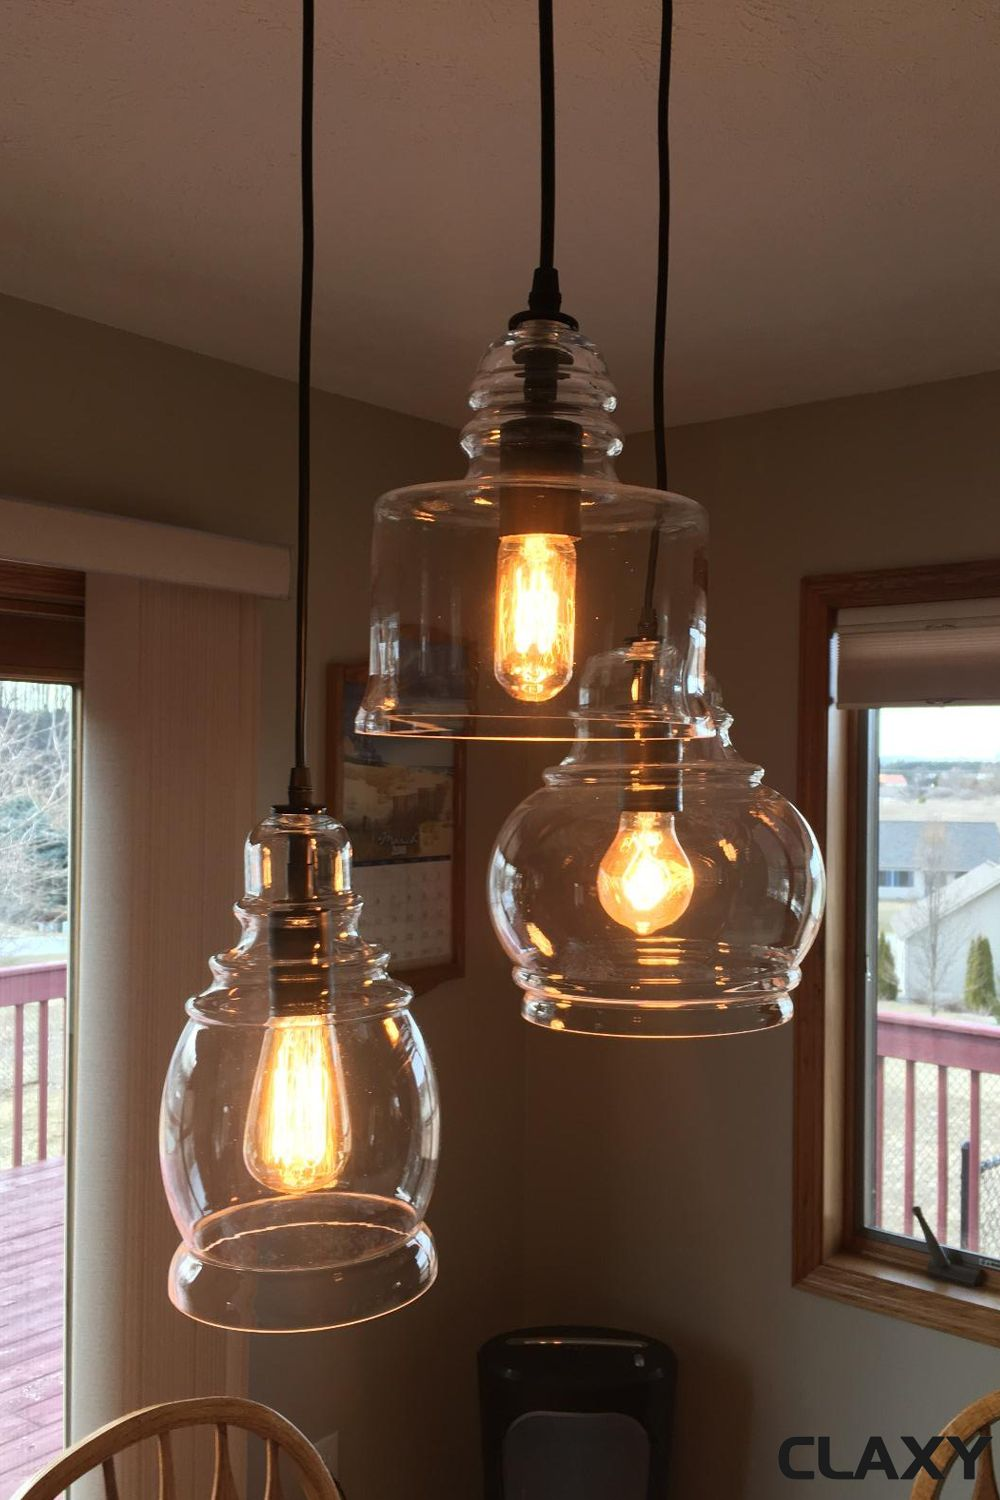 Modern Industrial Chandelier Mason Jar Island 3 Light Fixture